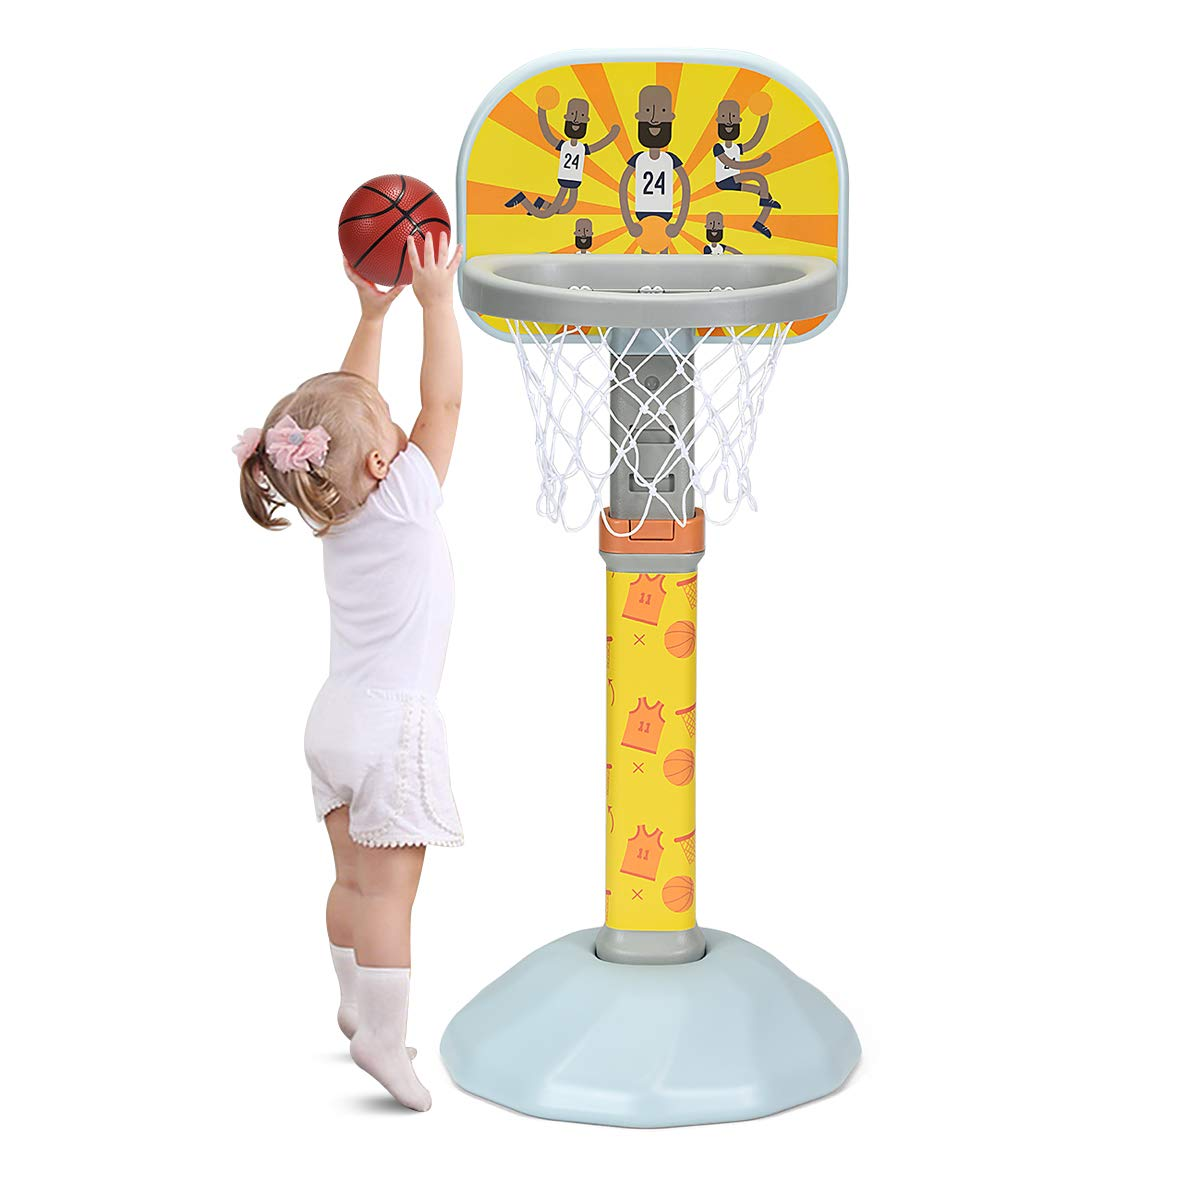 Costzon Kids Basketball Hoop, 38-53'' H, 9 Adjustable Height Basketball Stand Set with Ball & Pump, Indoor/Outdoor Play, Easy Score Basketball Game for Boys & Girls (Blue Stand) by Costzon